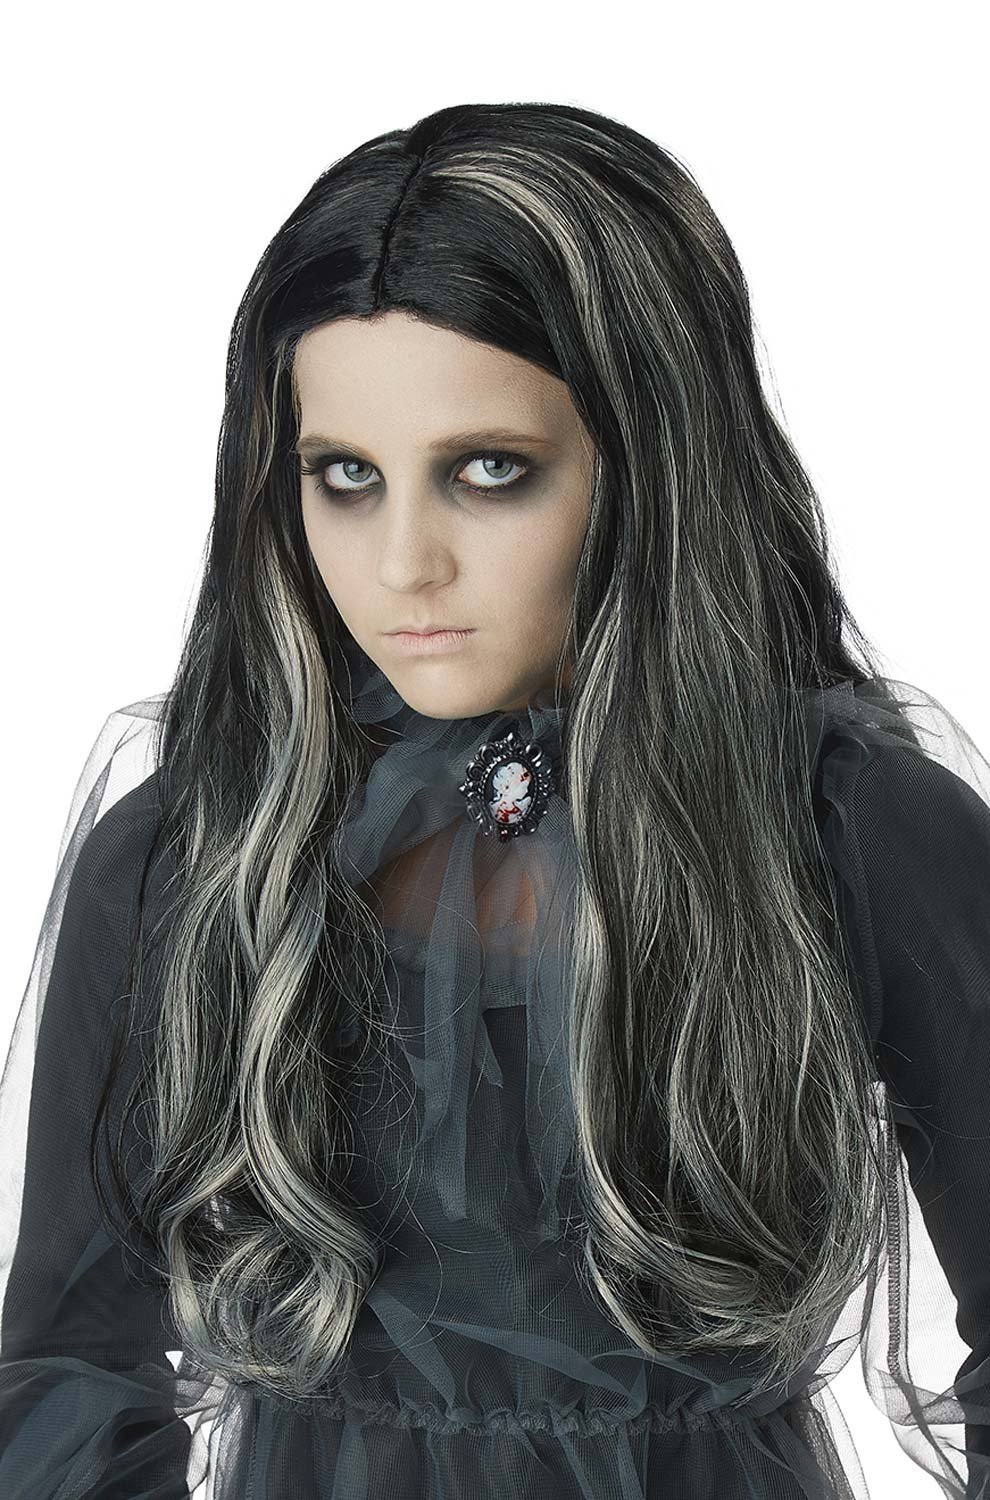 California Costumes Bloody Mary Girl Wig Children Wig, Black by California Costumes